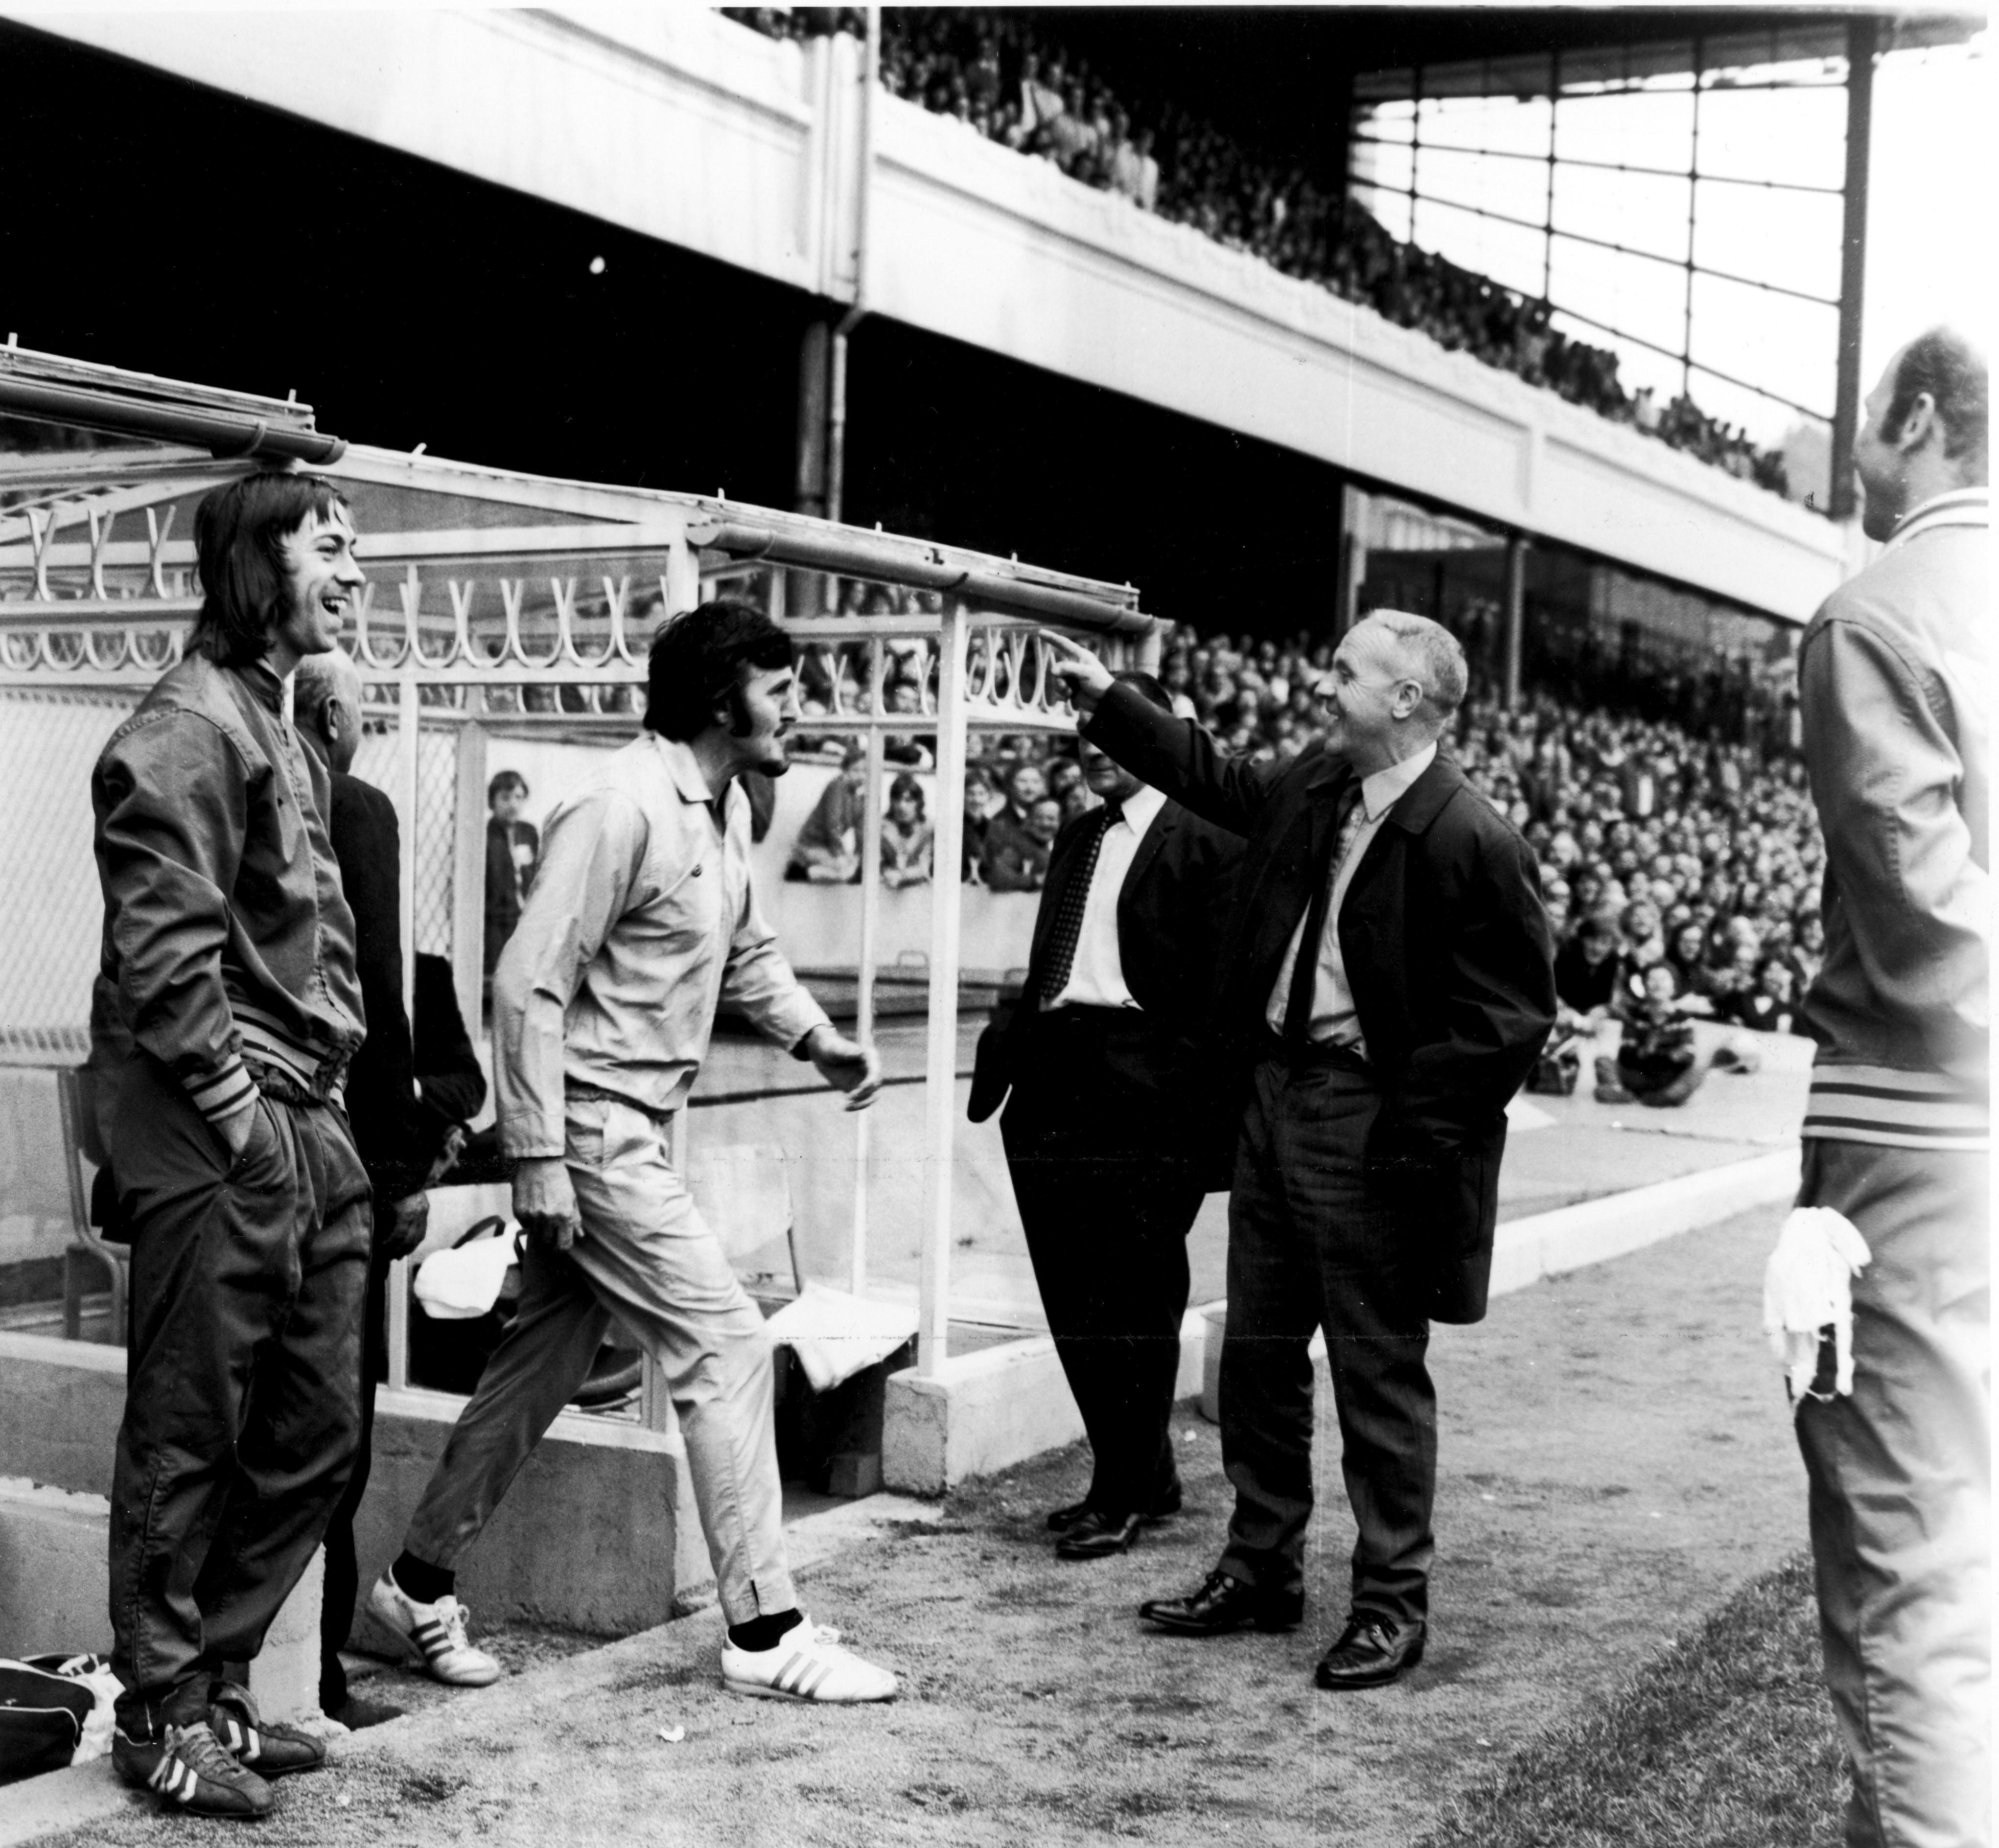 Arsenal's Charlie George (l) and Liverpool manager Bill Shankly (r) laugh their heads off as commentator Jimmy Hill (c) emerges in a sky blue tracksuit to take over from the linesman, who had limped off injured. A message was broadcast over the PA system asking for a qualified referee to take over from the linesman, and Hill was the only person to come forward. 16/9/1972